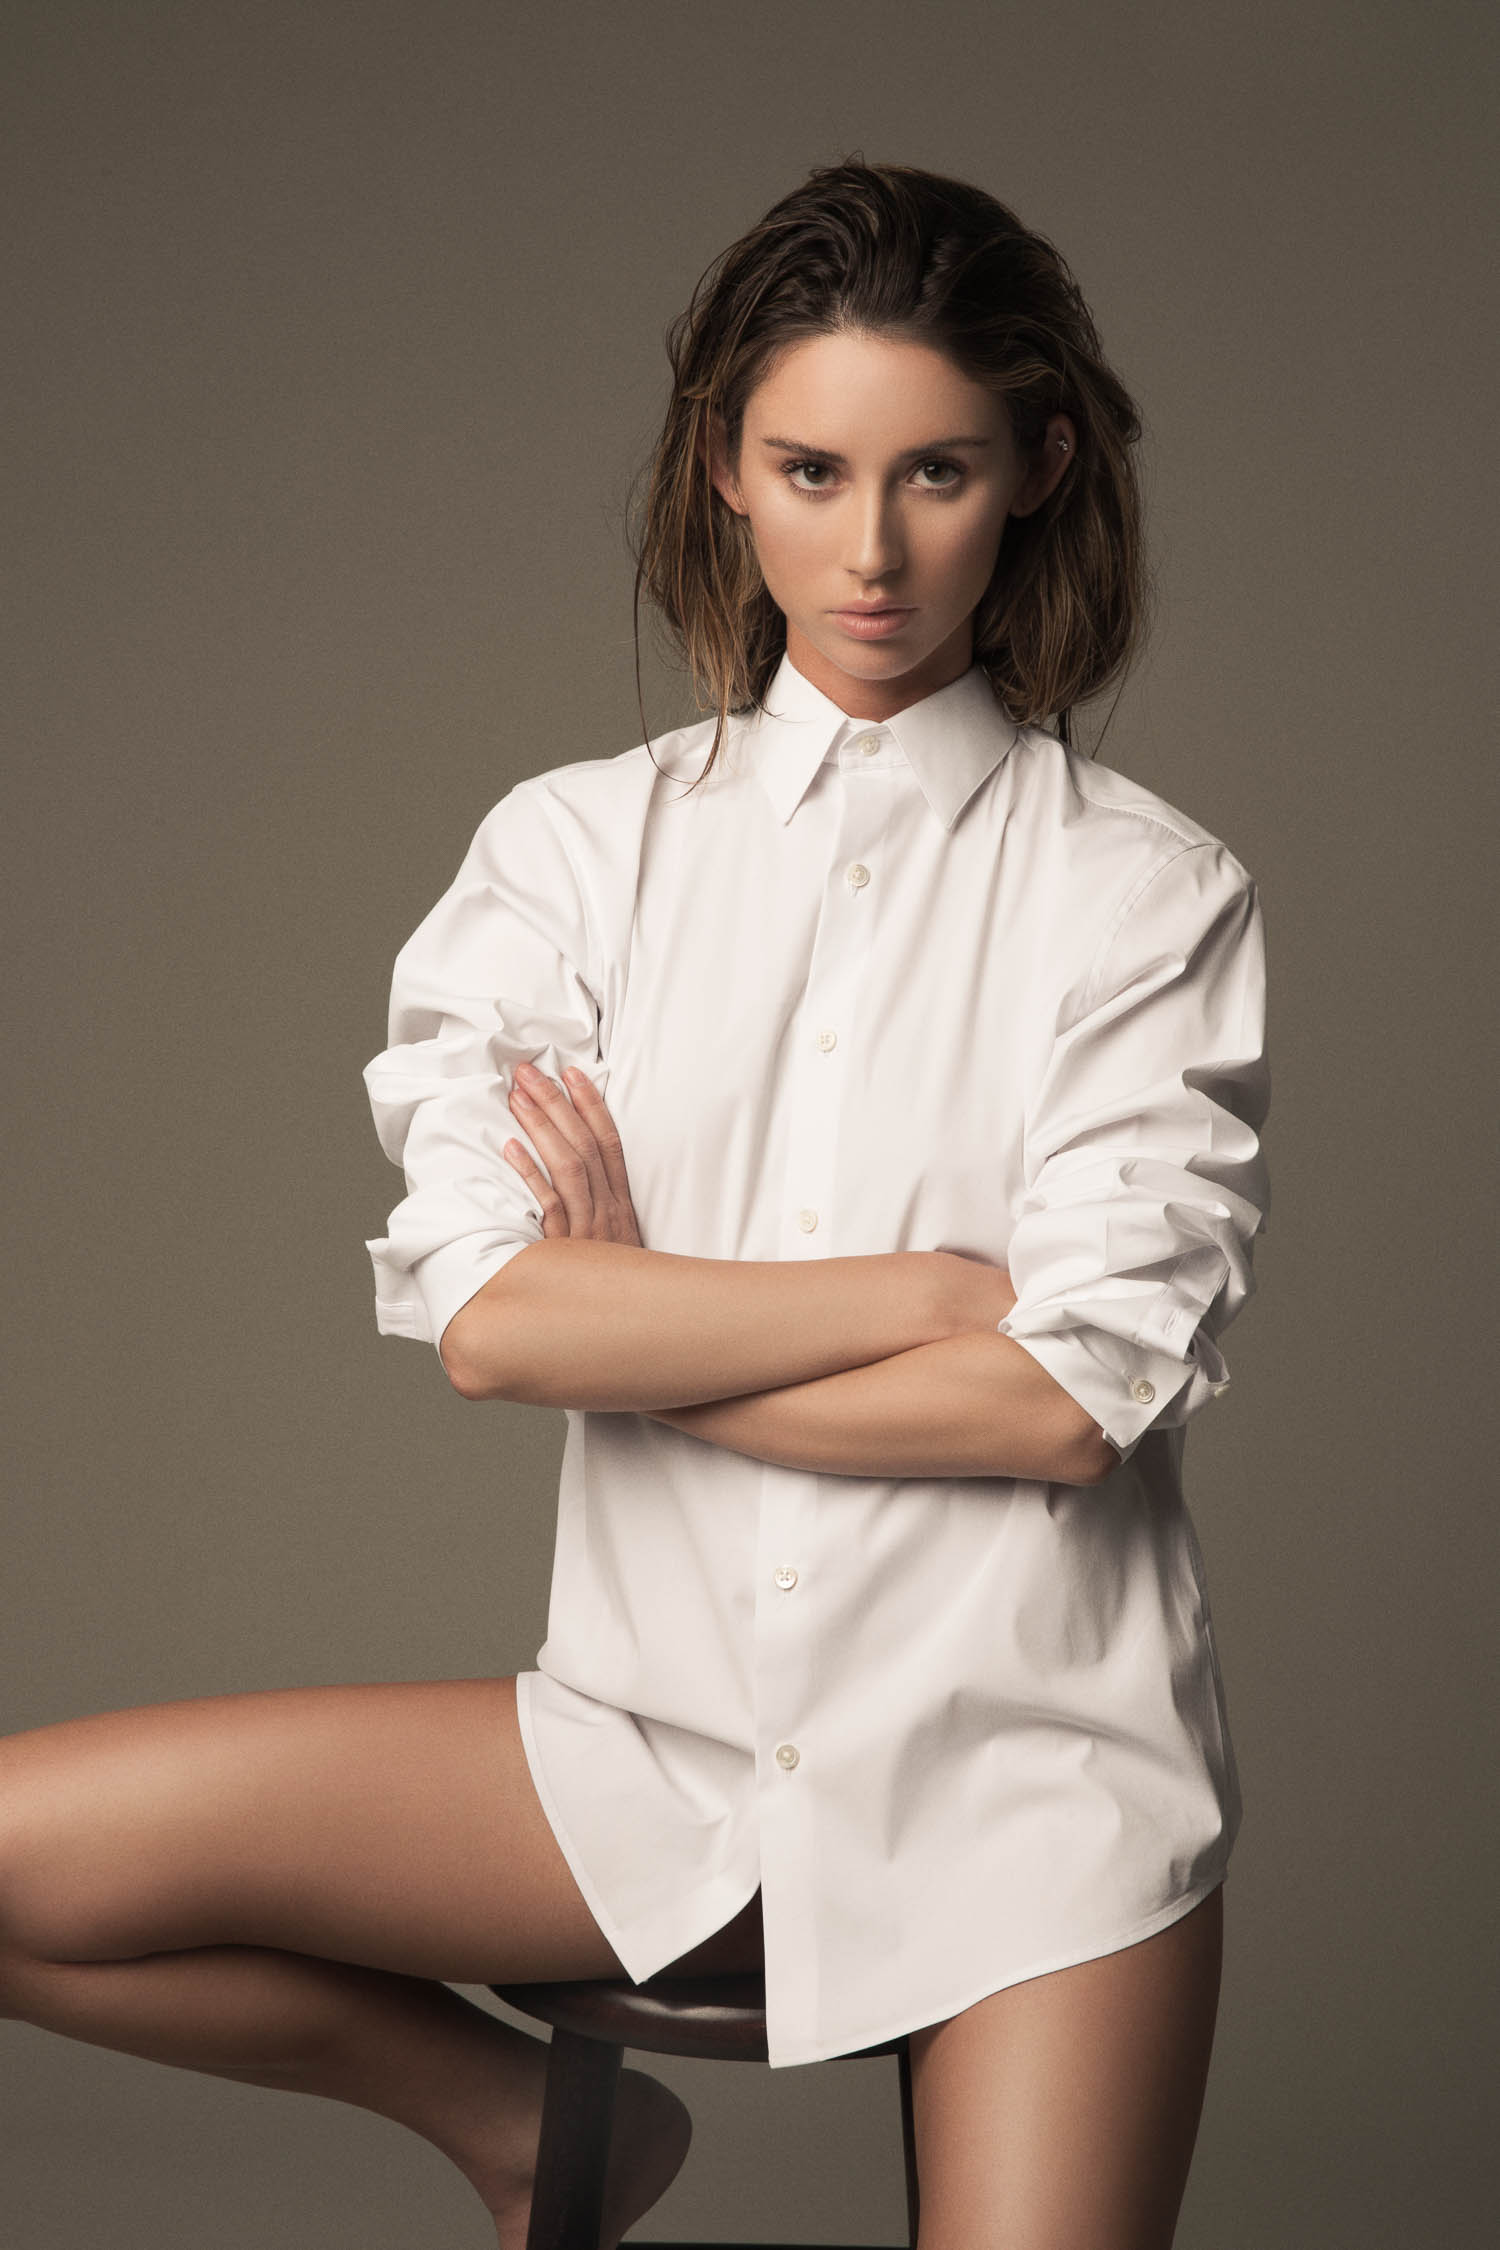 Model sitting in a white dress shirt with wet hair.